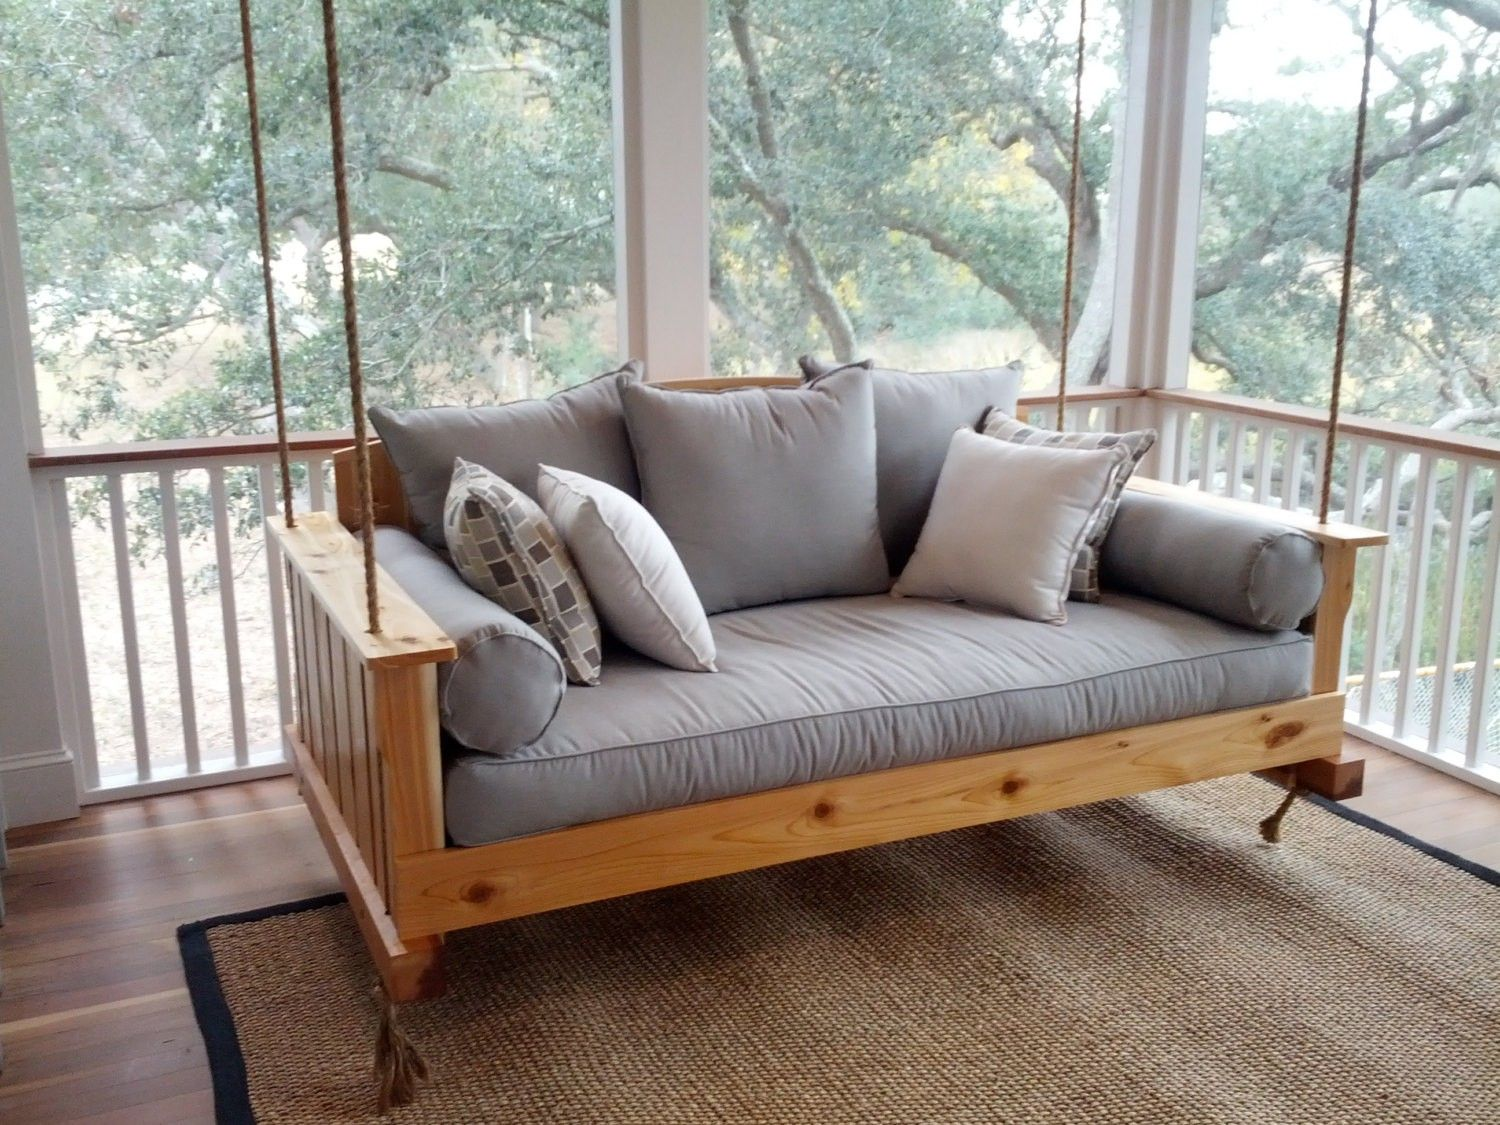 Lowcountry Swing Beds The Daniel Island Daybed Swing Porch Swing